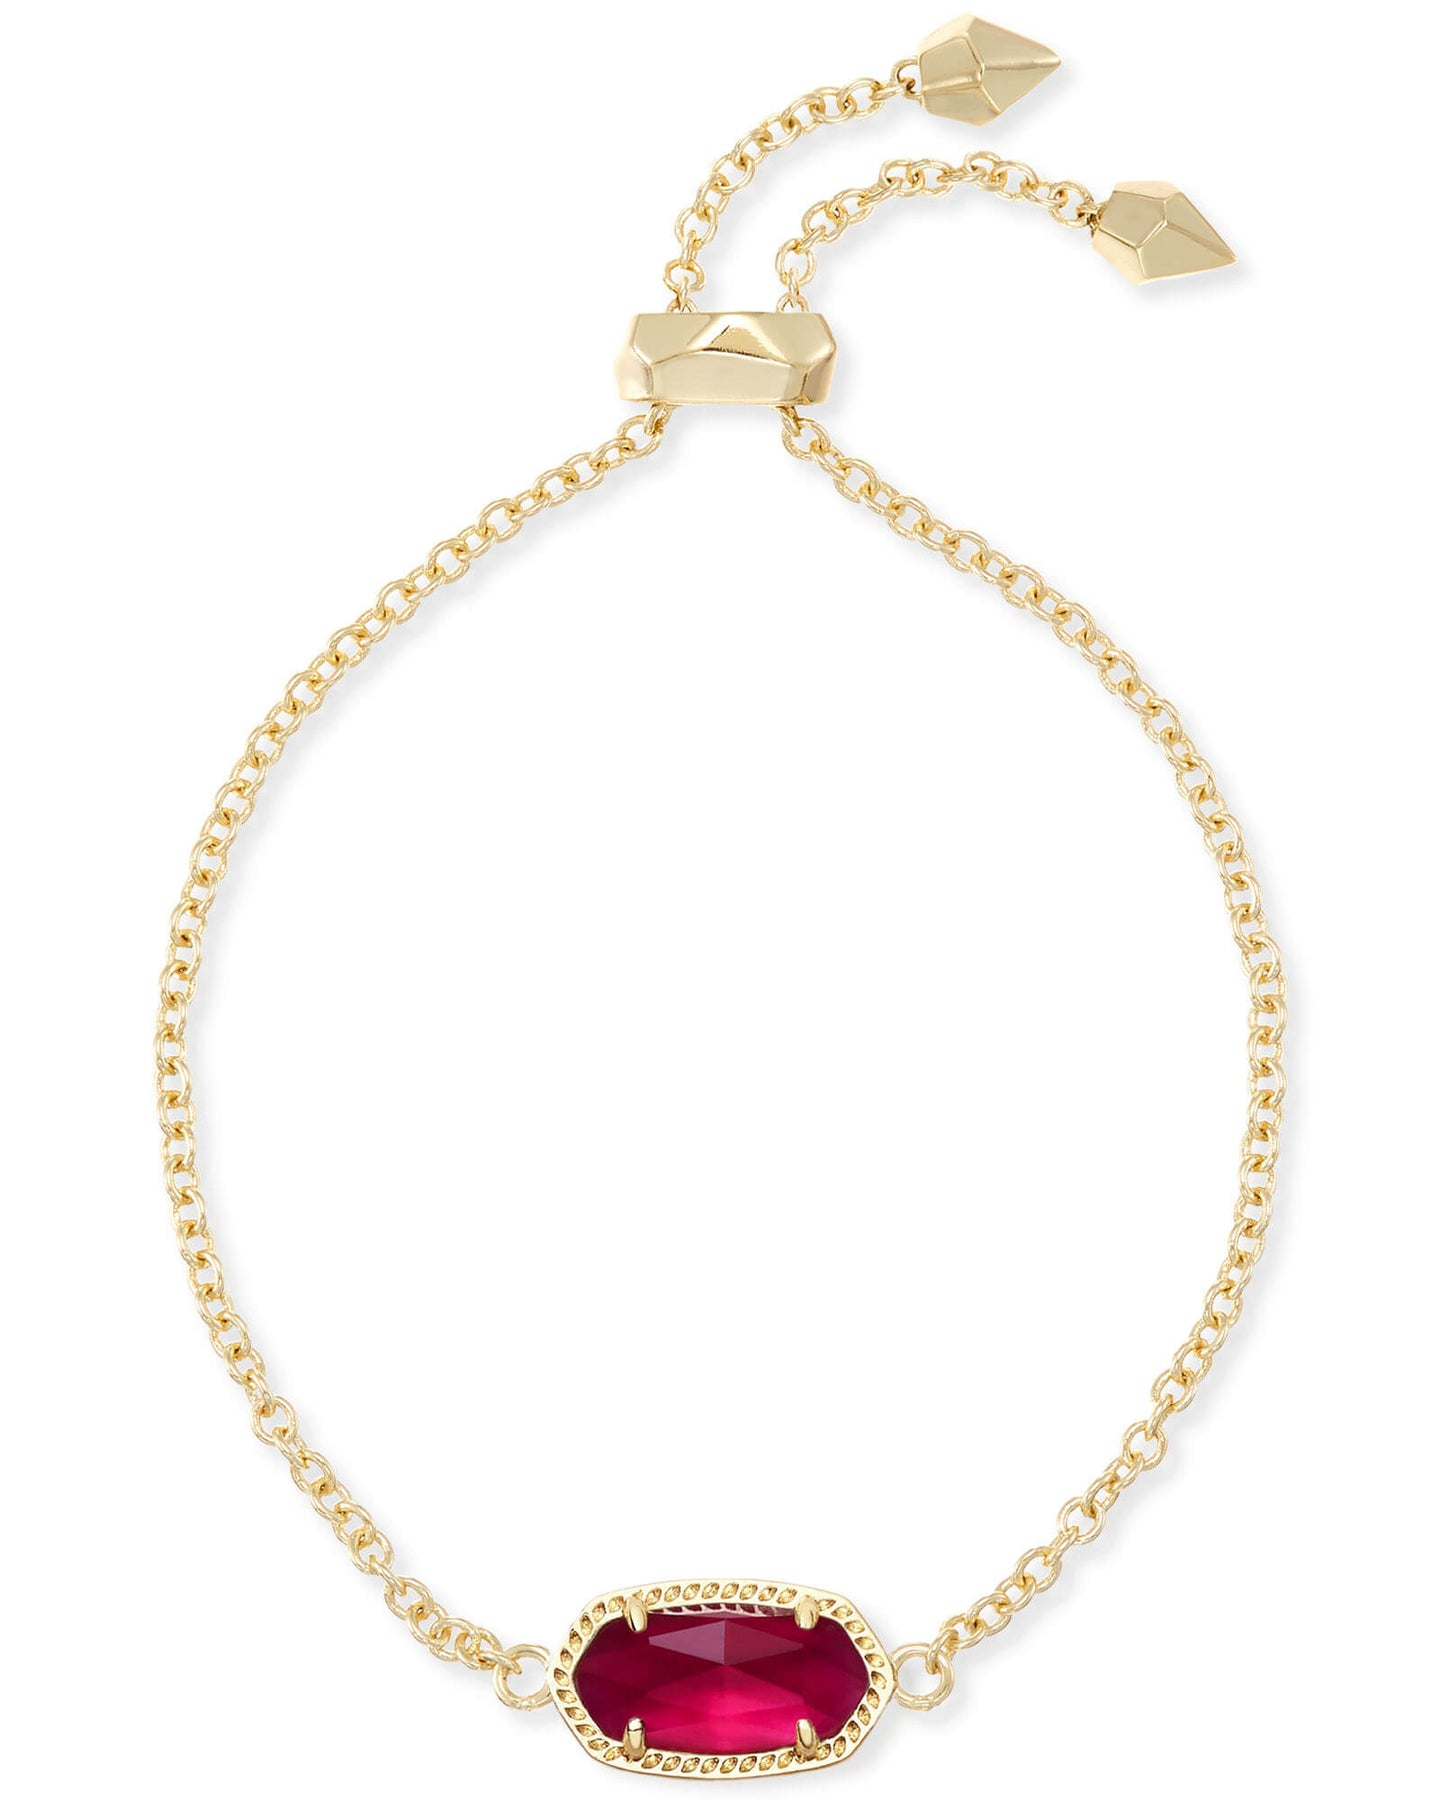 Kendra Scott Elaina Bracelet Gold Berry Illusion